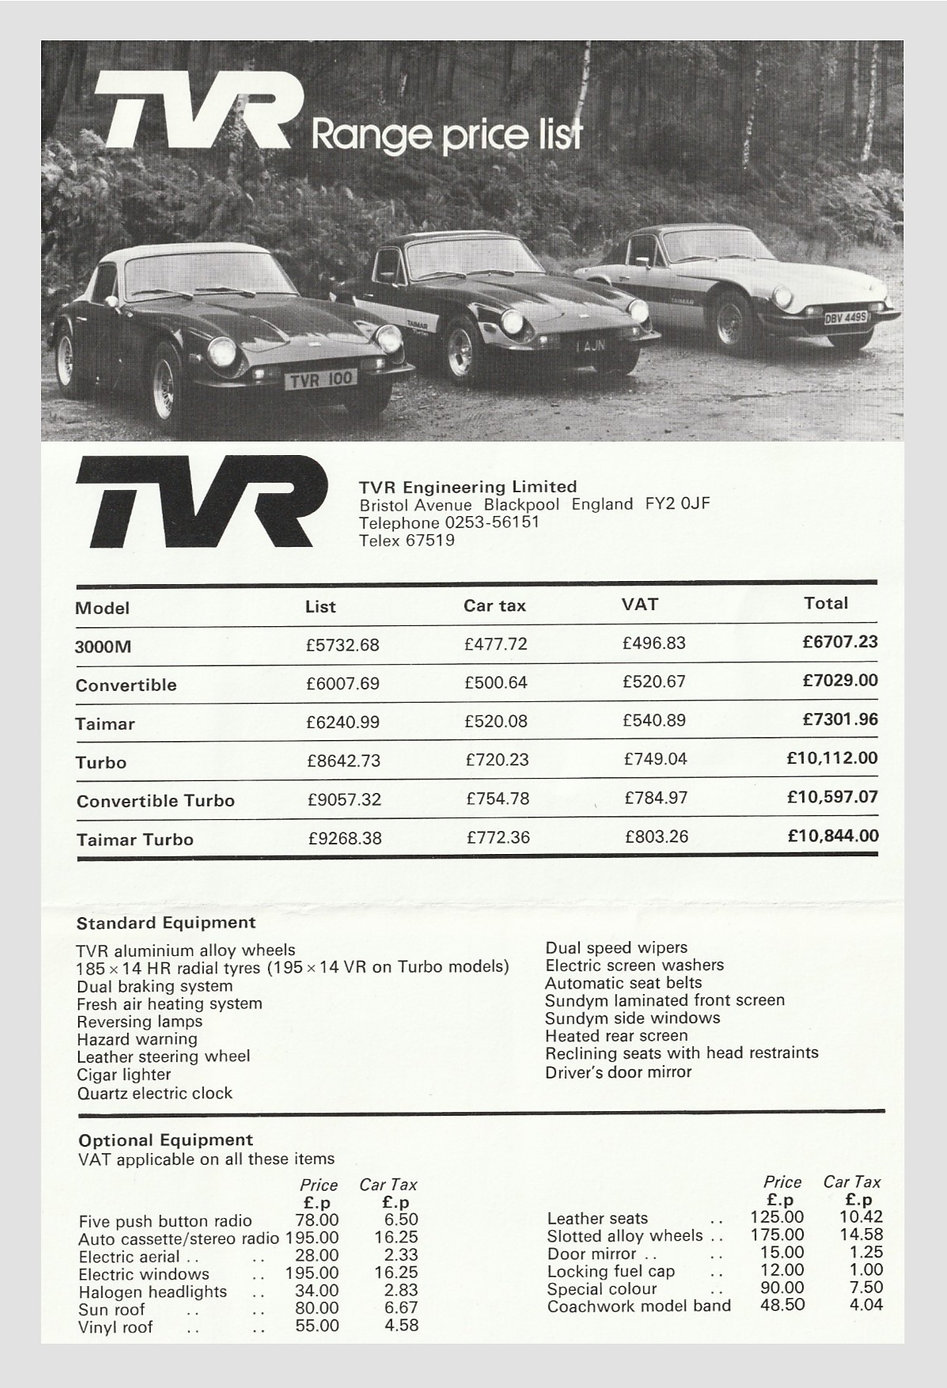 TVR%20M%20Series%20Price%20range_edited.